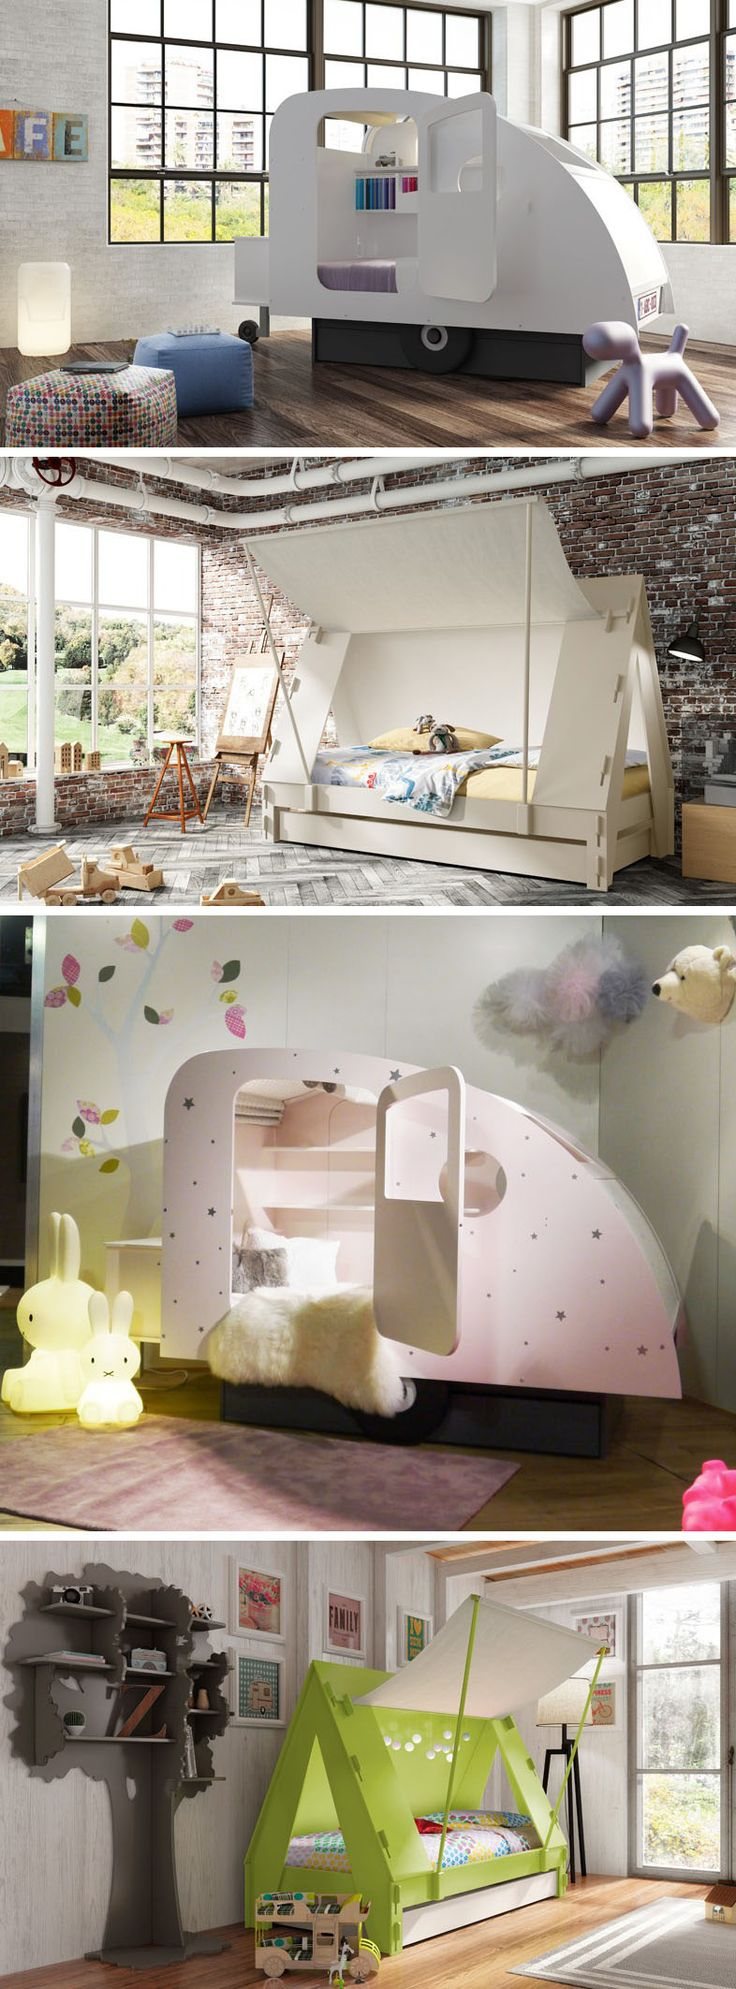 Belgium design company Mathy By Bols have created two childrens beds named Caravan and Tent, that allow the world of camping / travelling to be explored indoors.